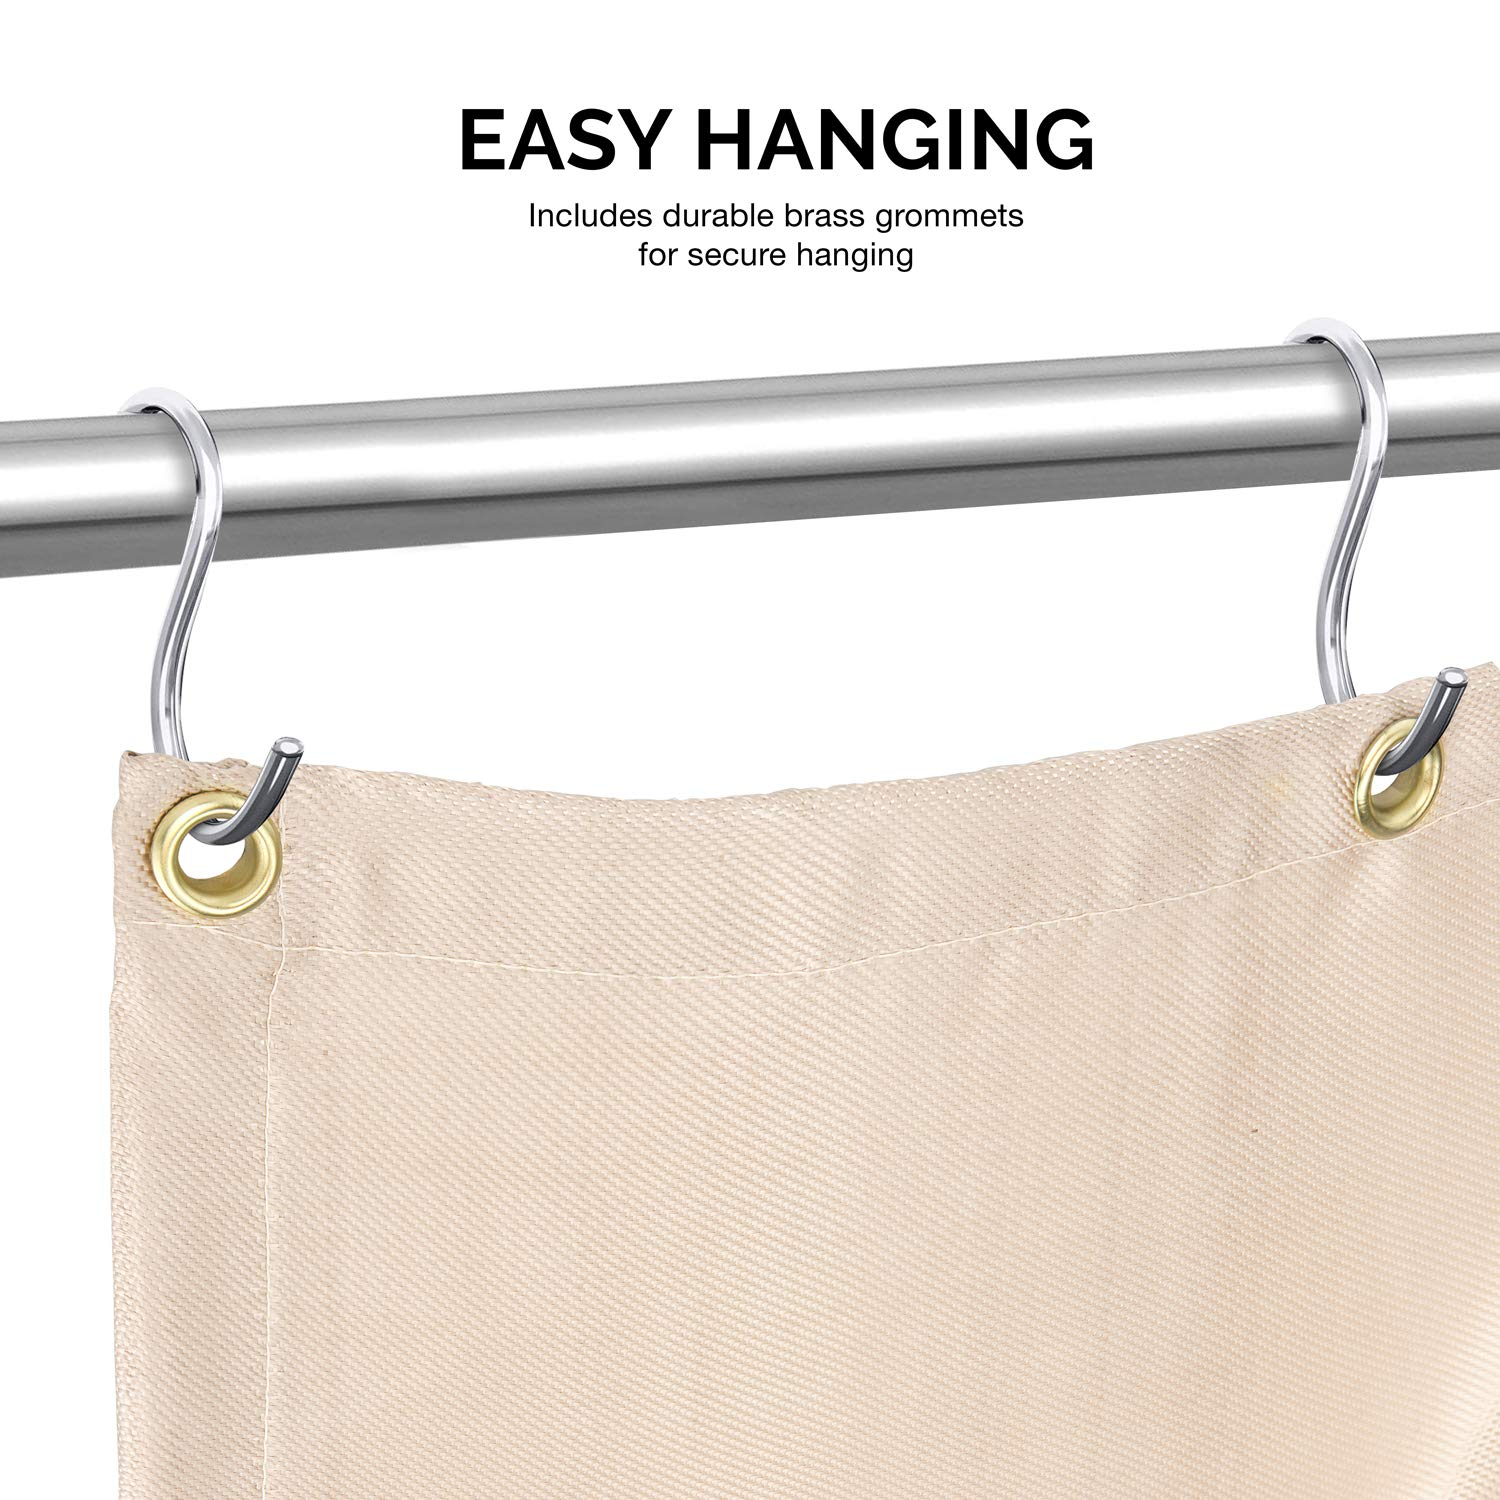 Neiko 10909A Fiberglass Welding Blanket and Cover, 6' x 8'   Brass Grommets for Easy Hanging and Protection by Neiko (Image #5)